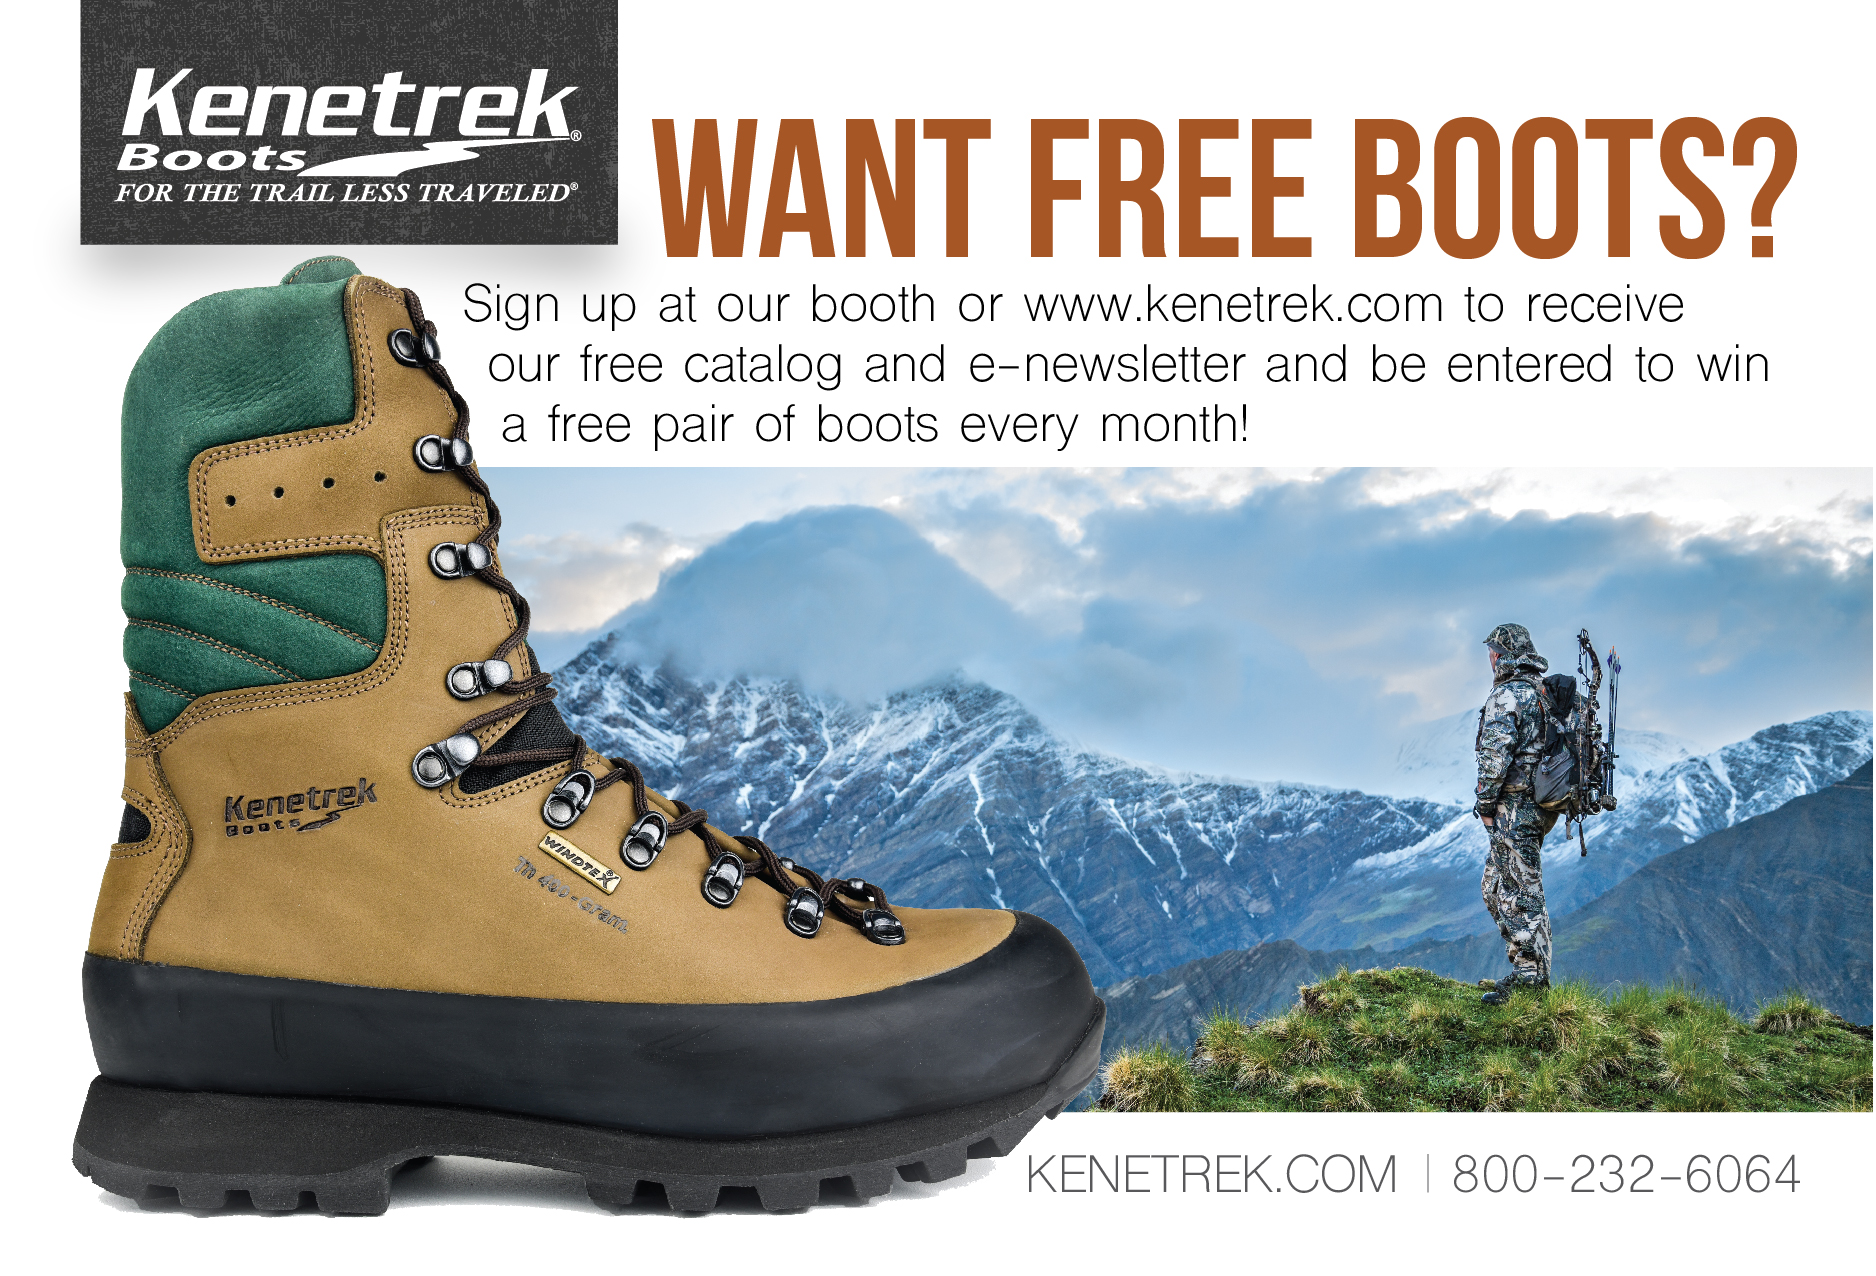 Want free boots?